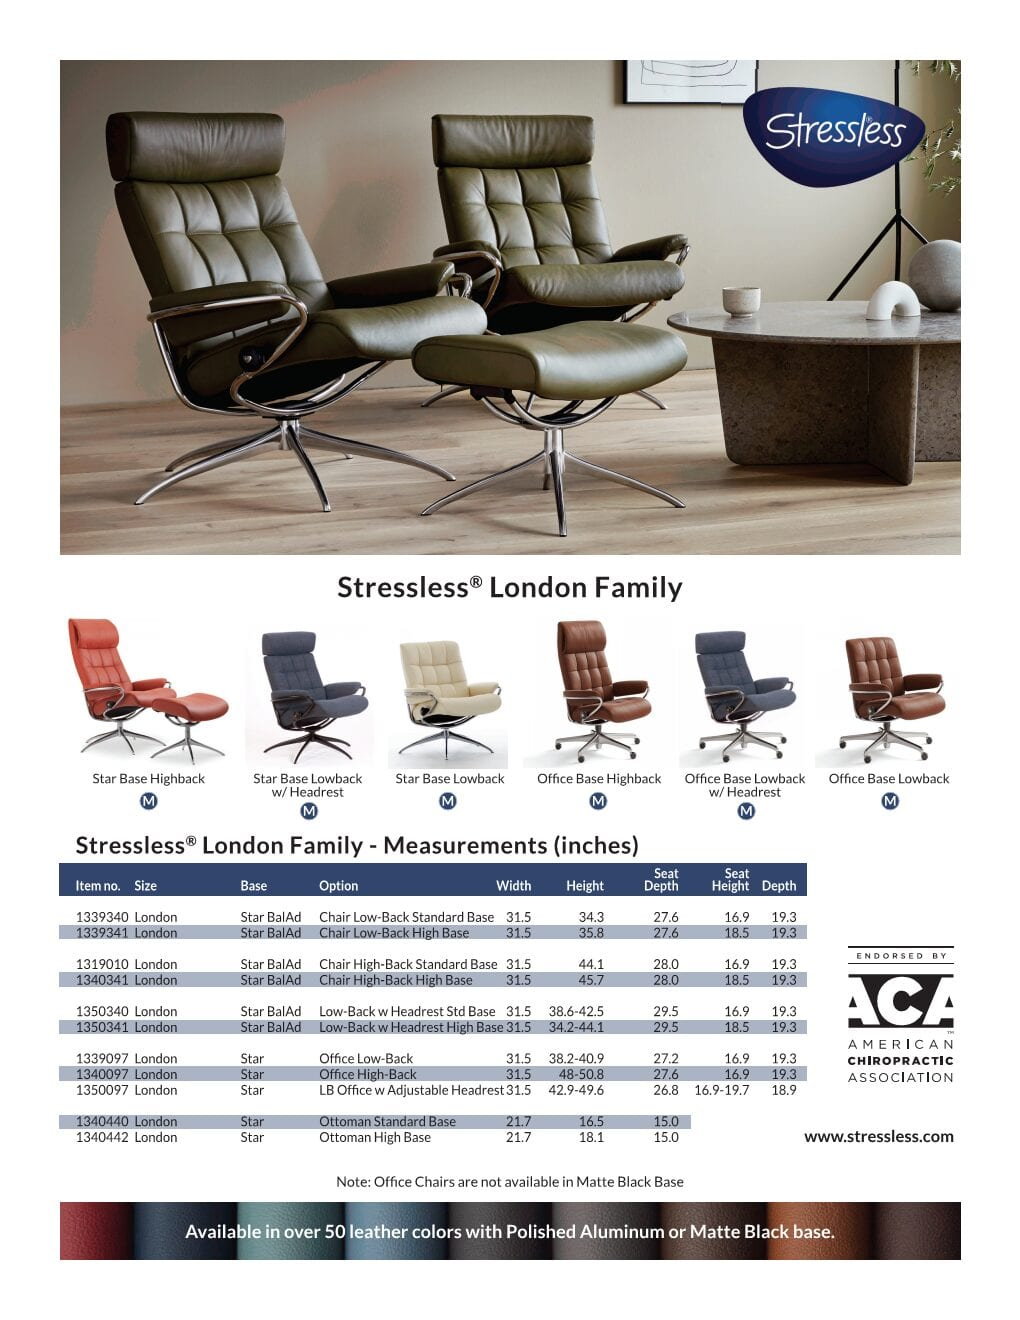 Stressless London Product Product Sheet